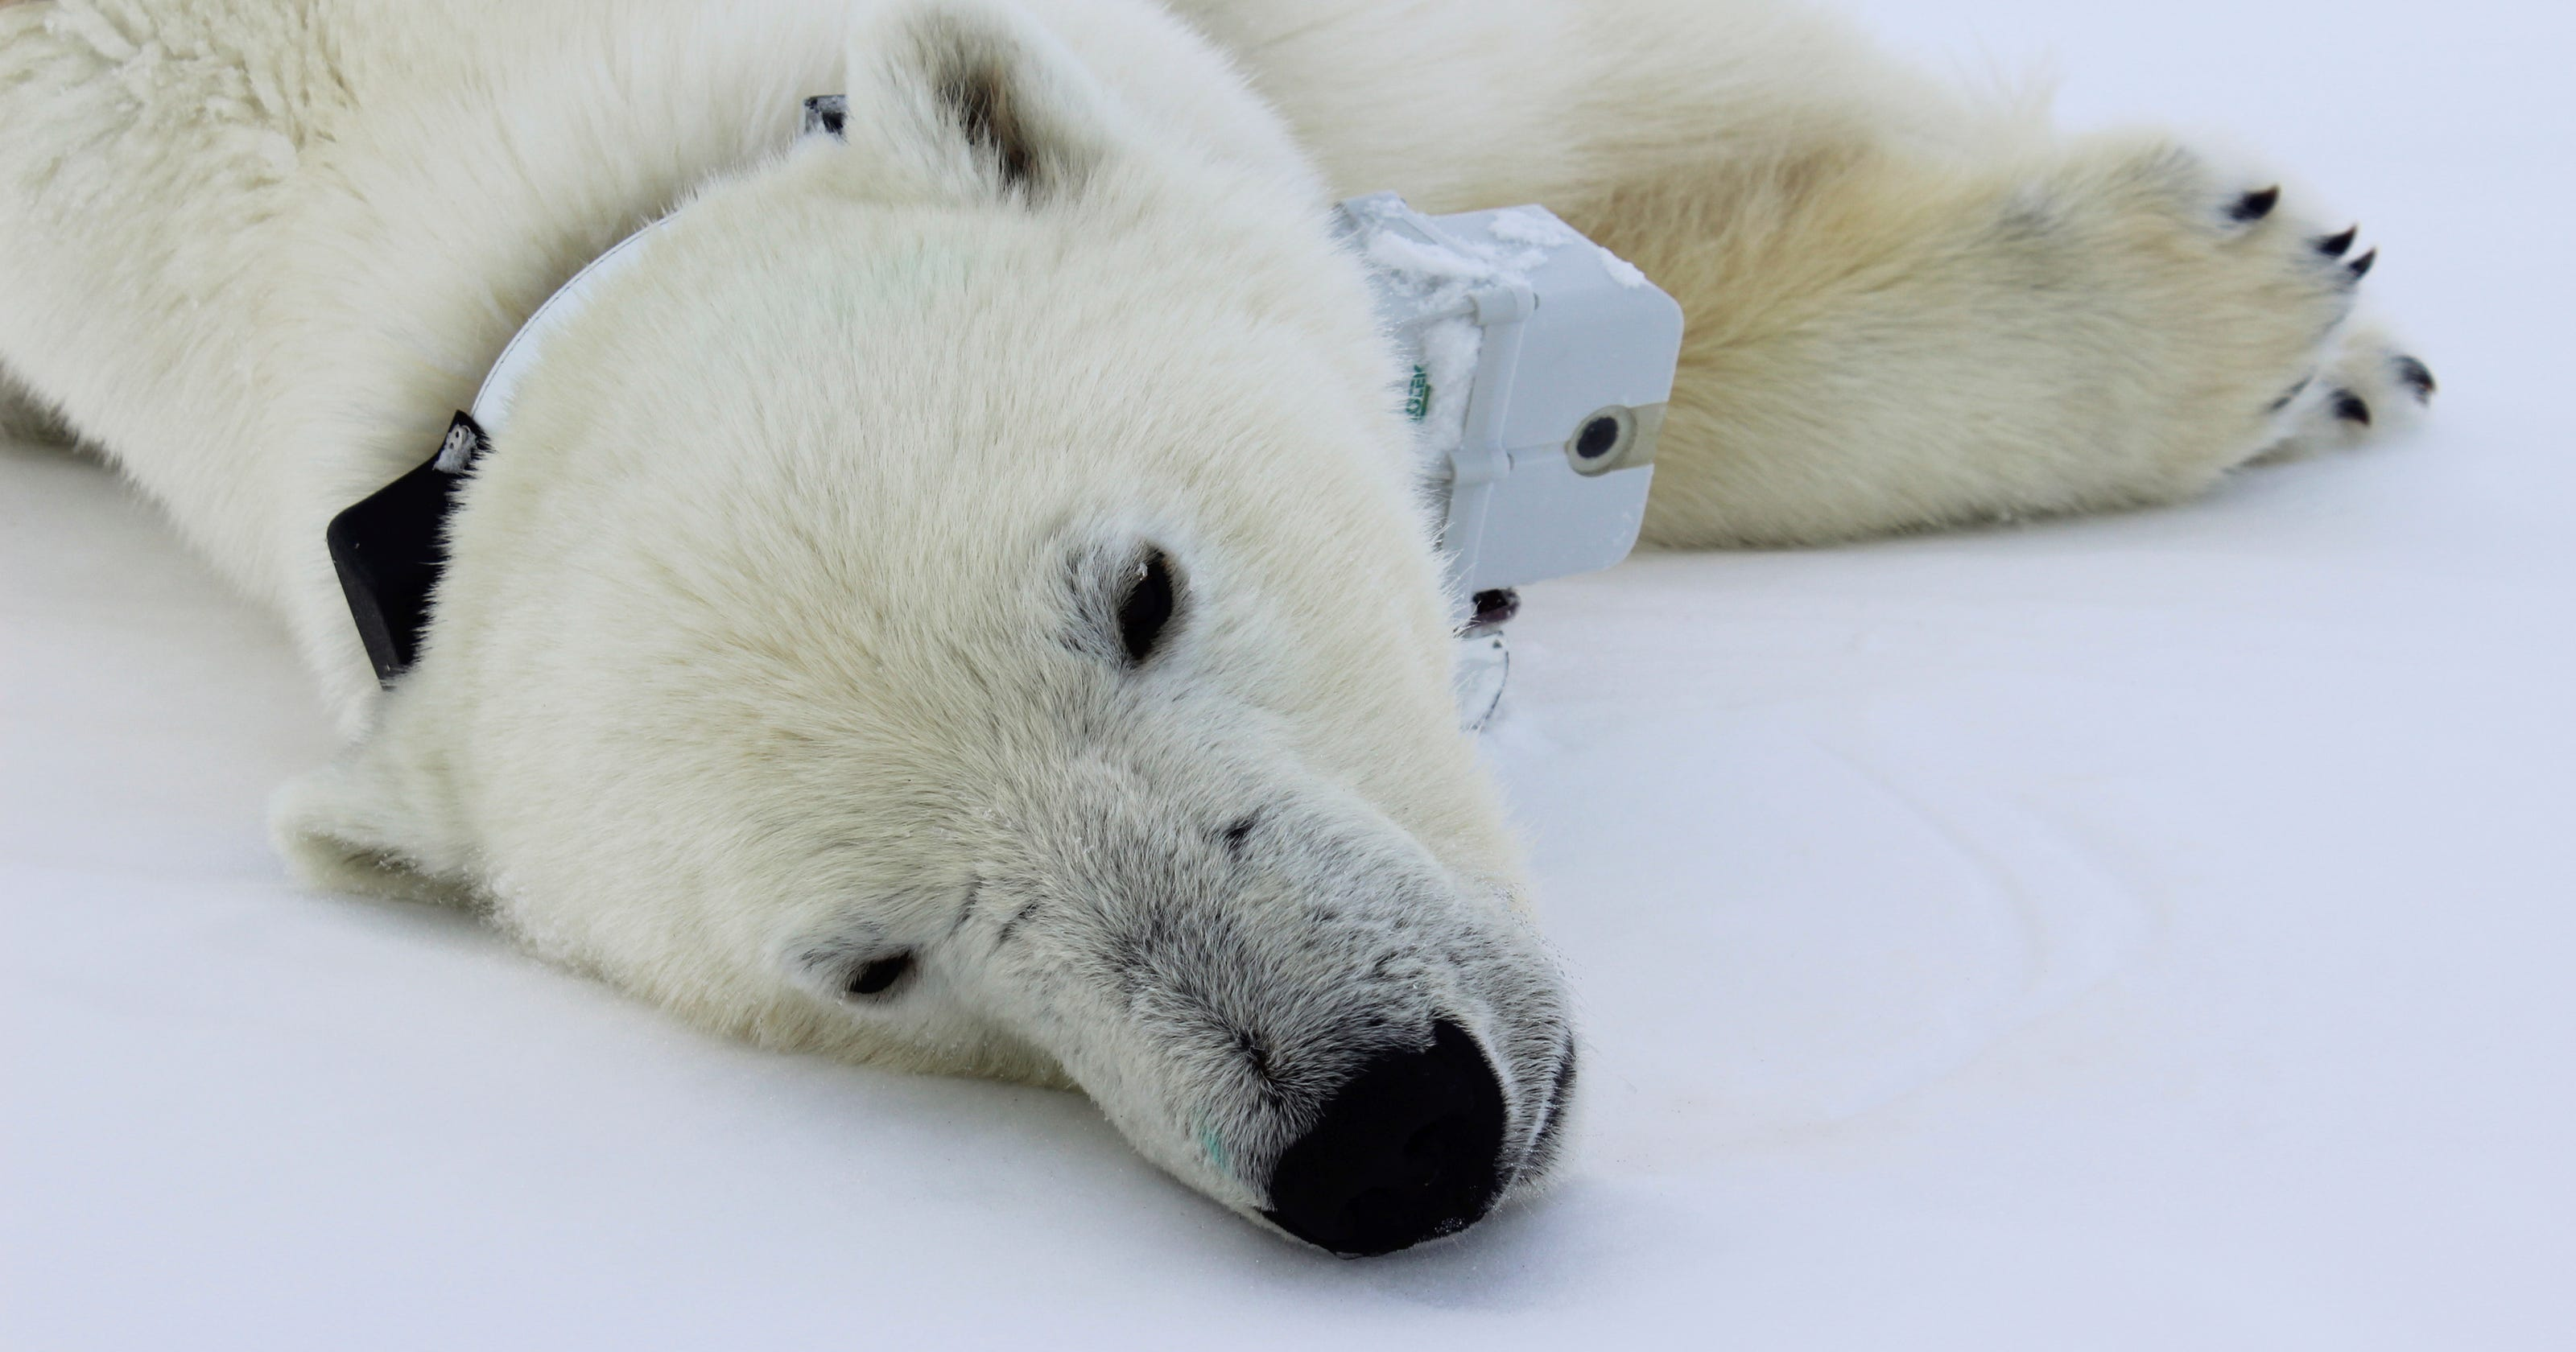 Climate Change Is Making Polar Bears Go Hungry Study Finds